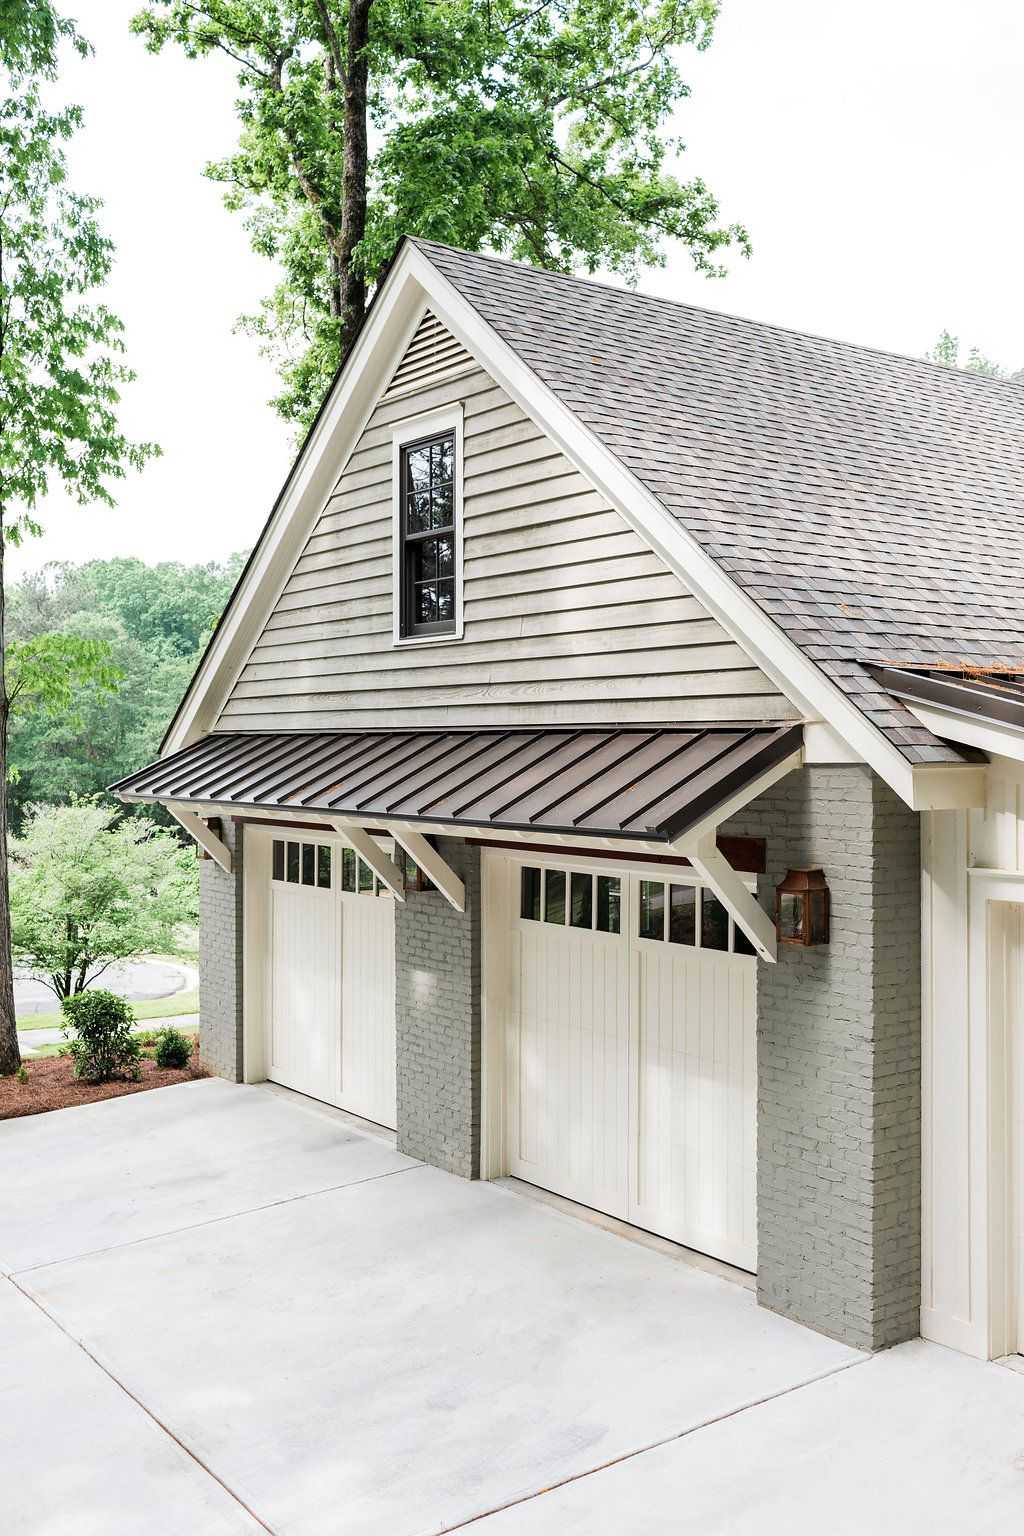 Sage Green Painted Brick Home With Separate Garage Awning Over The Garage Doors Lantern Sconces On Either Si House Awnings Garage Door Design Garage Design